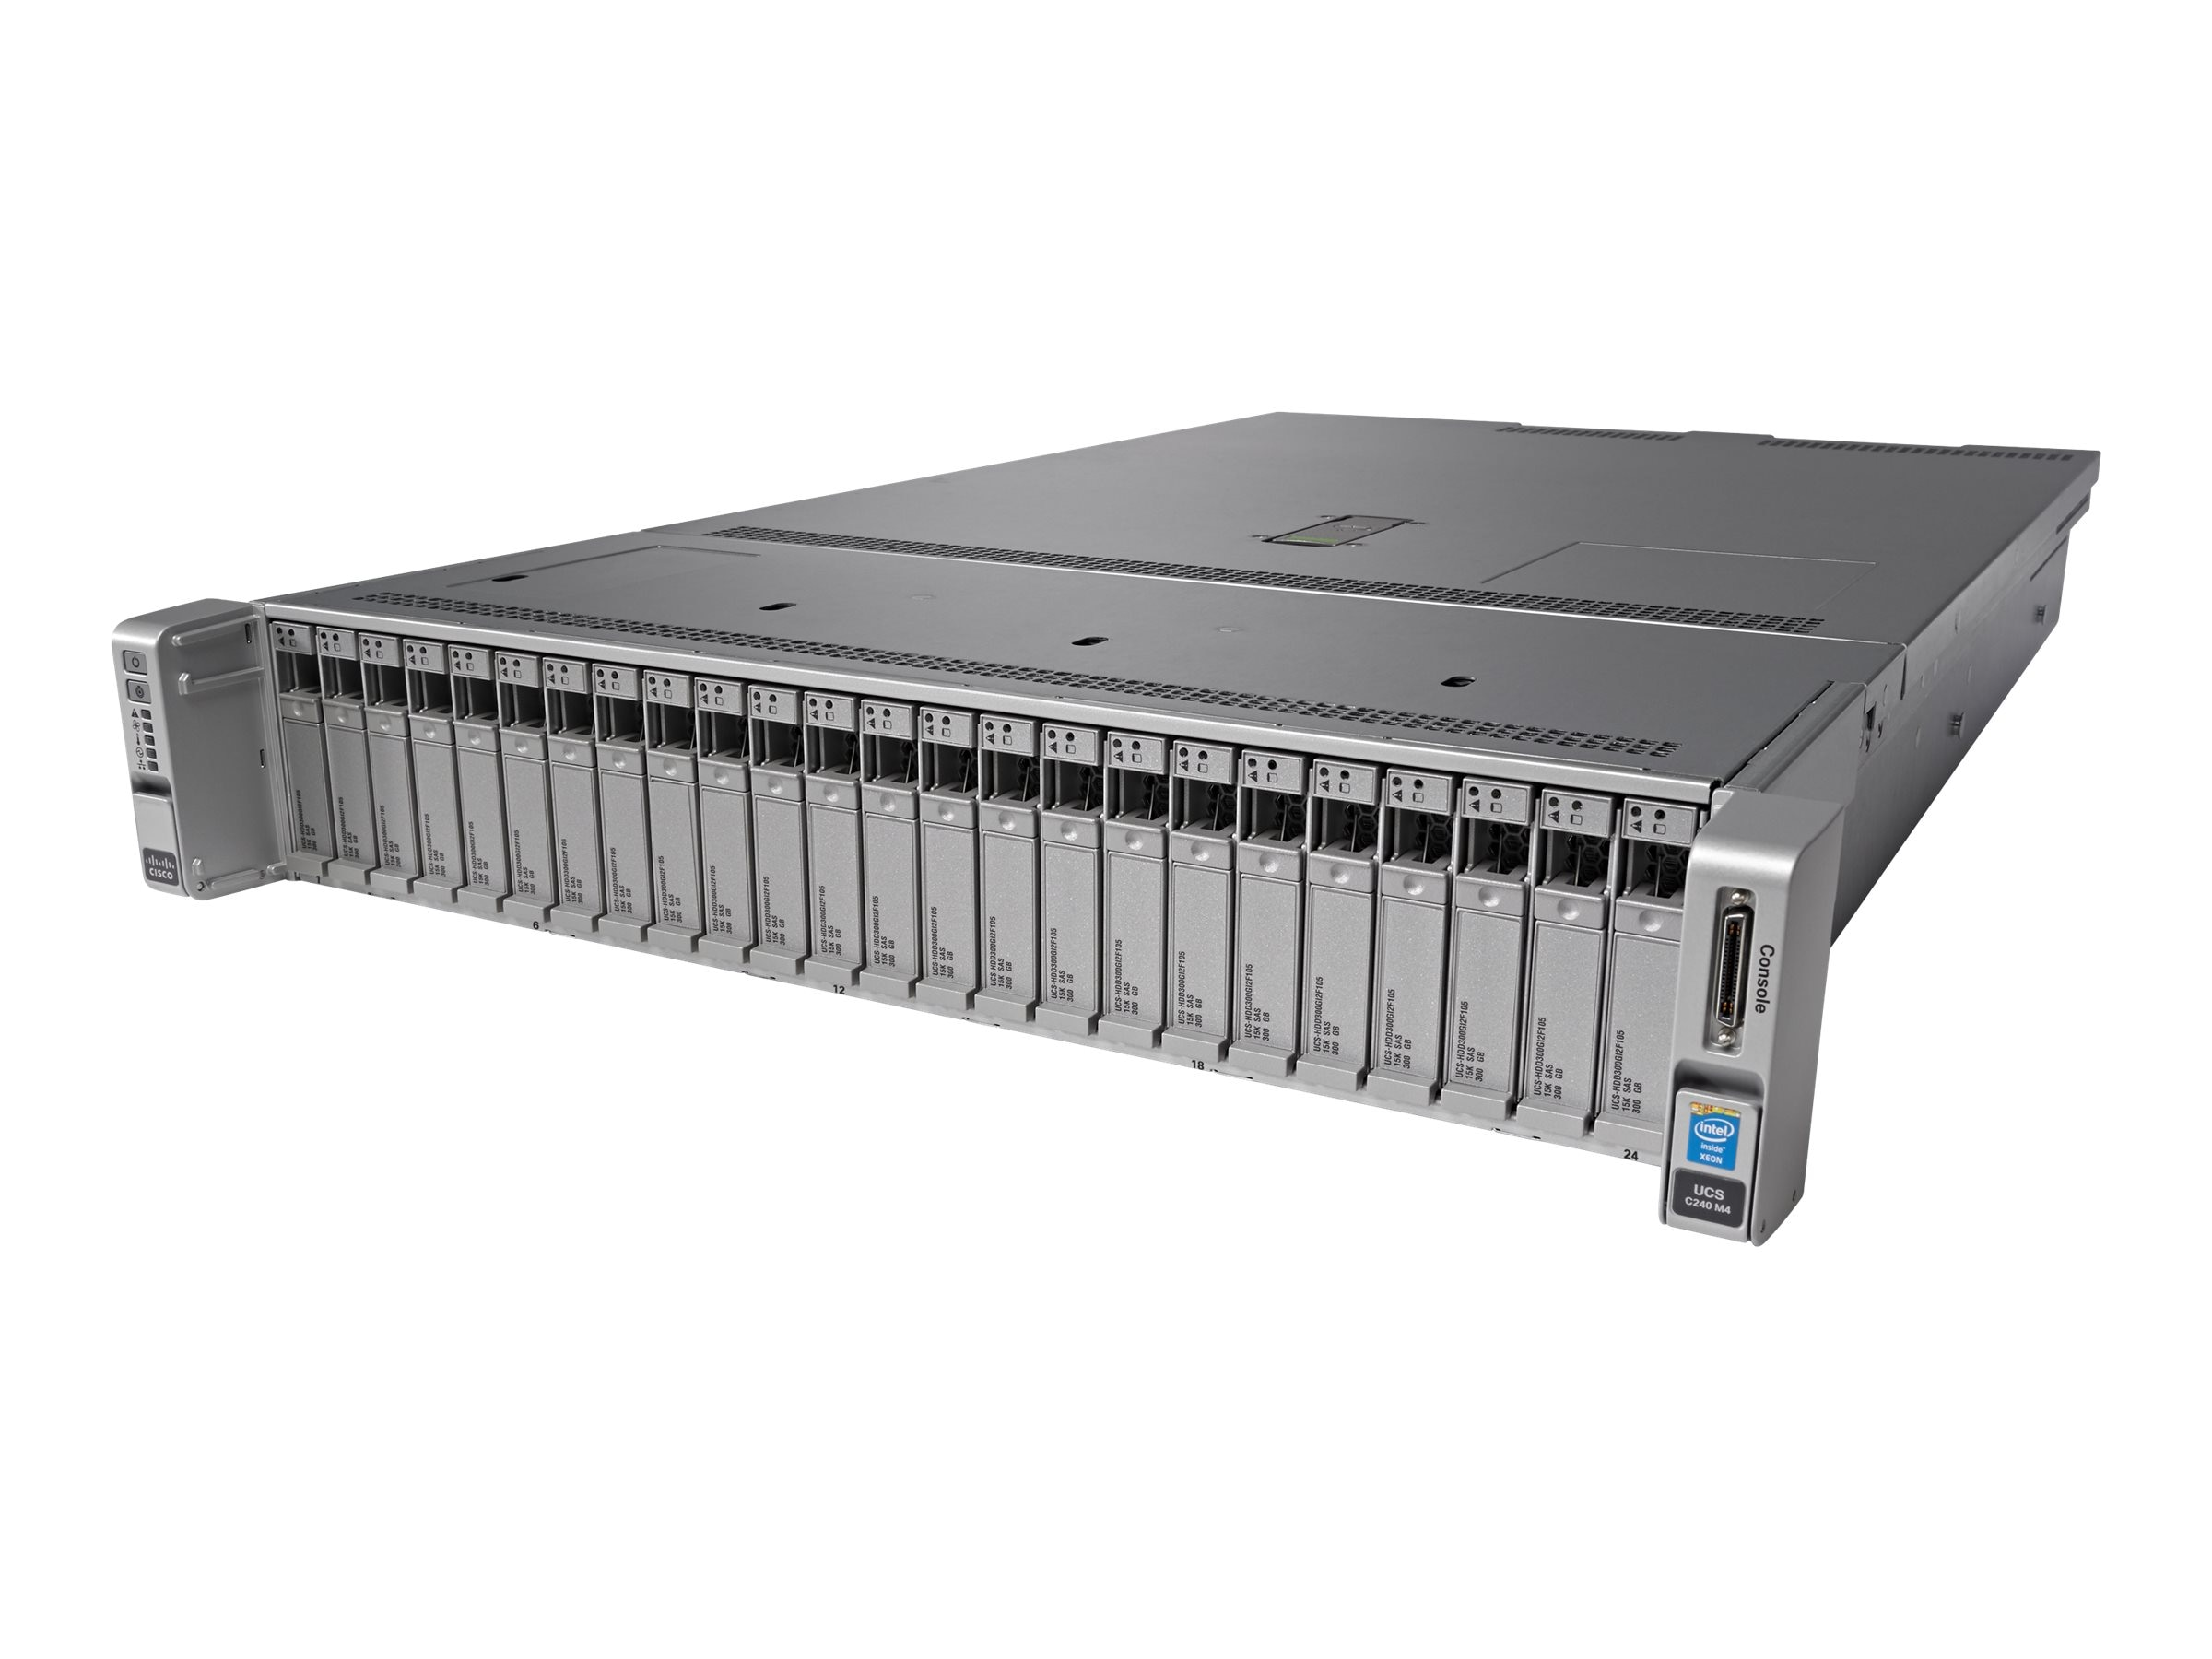 Cisco SmartPlay Select UCS C240 M4 (2x)Xeon E5-2630 v3 128GB VIC1227 2x1400W, UCS-SPL-C240M4-S1